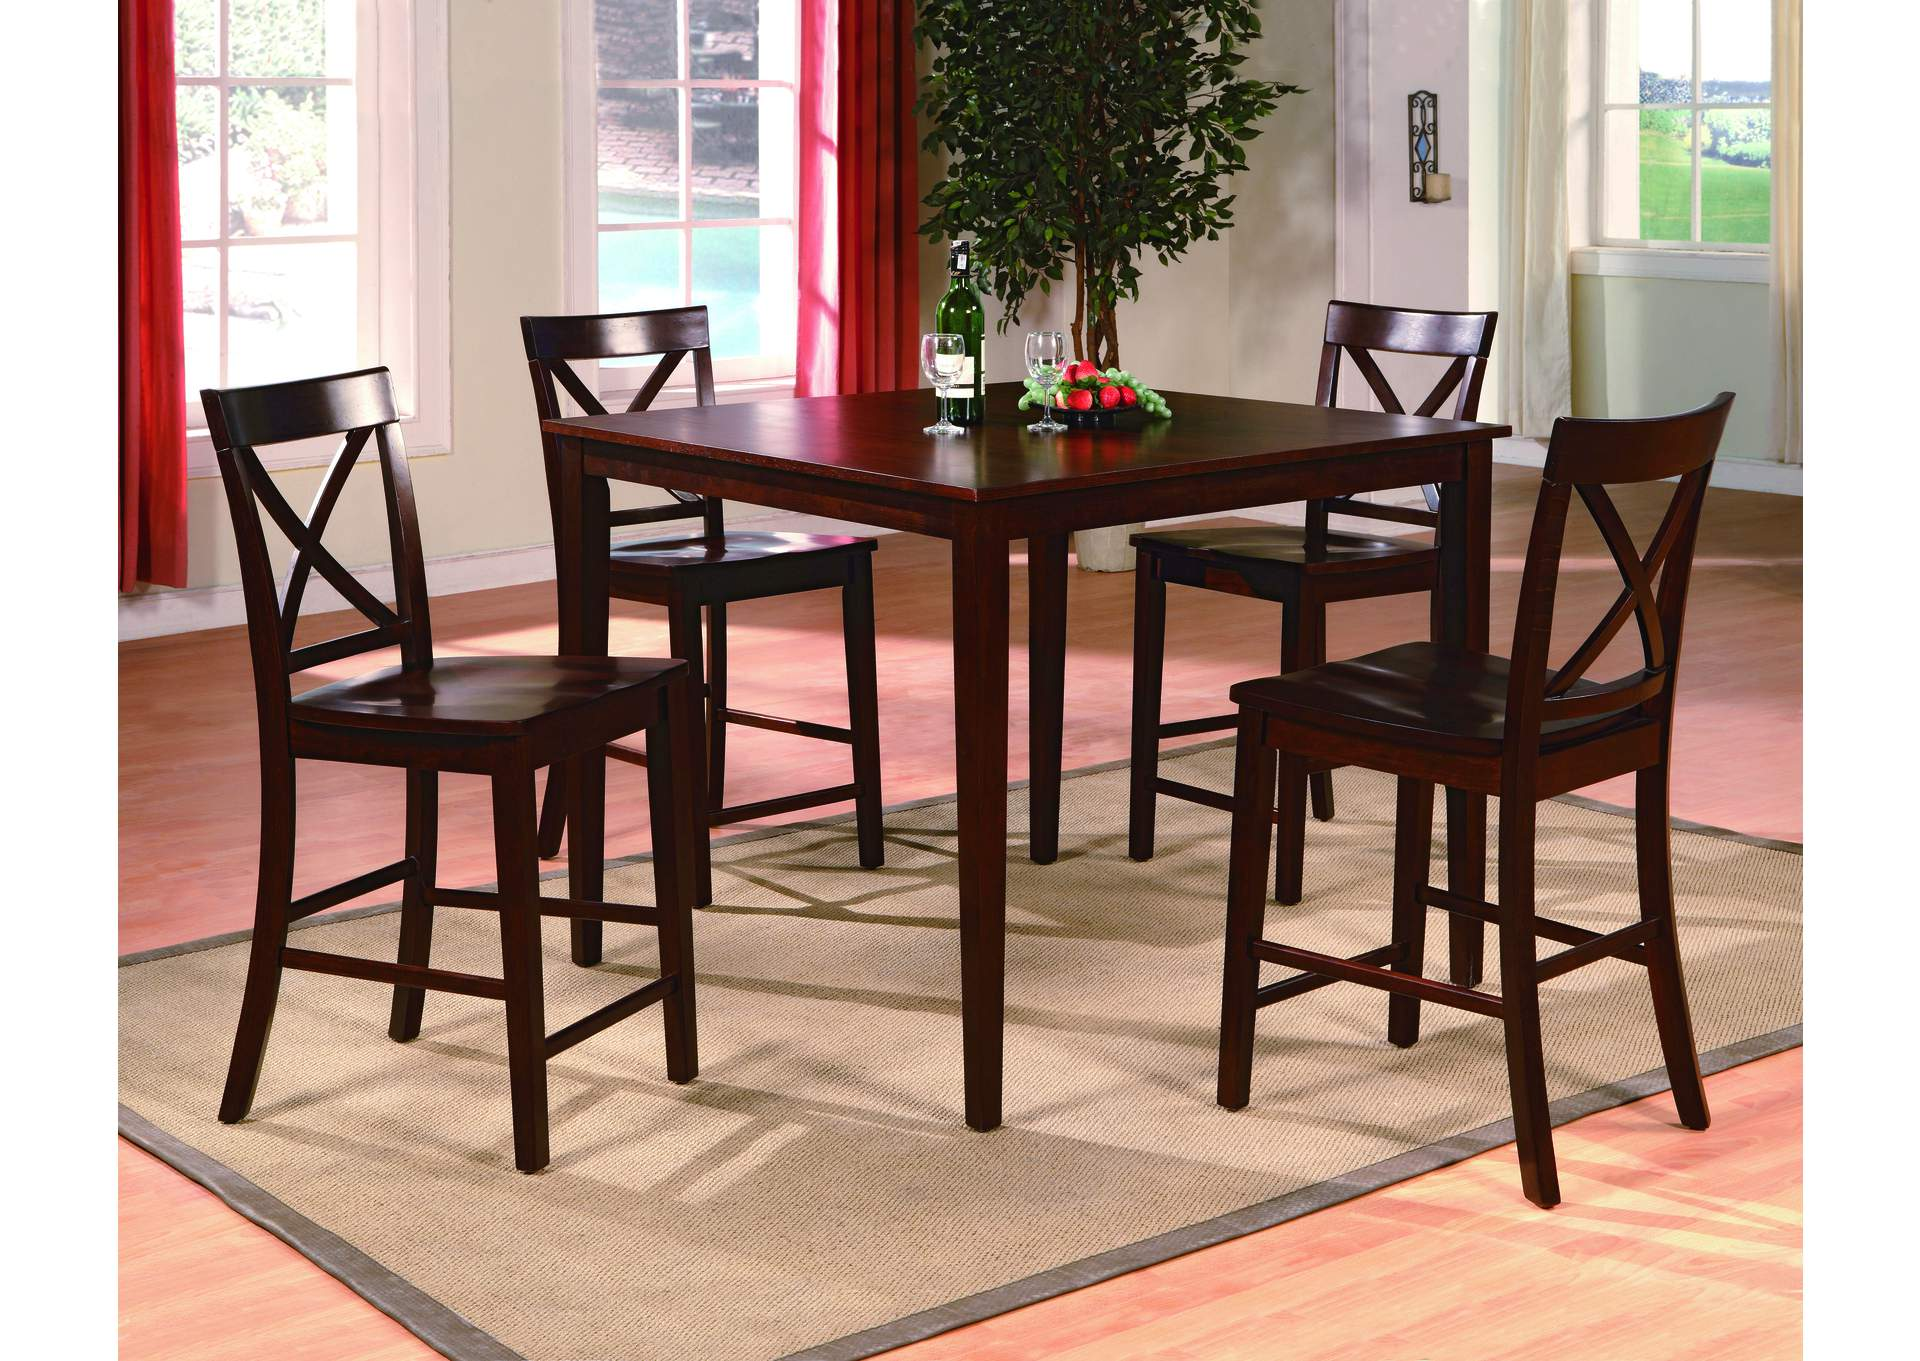 Theodore Brown Counter Height Dining Set W/ 4 Chairs,Crown Mark